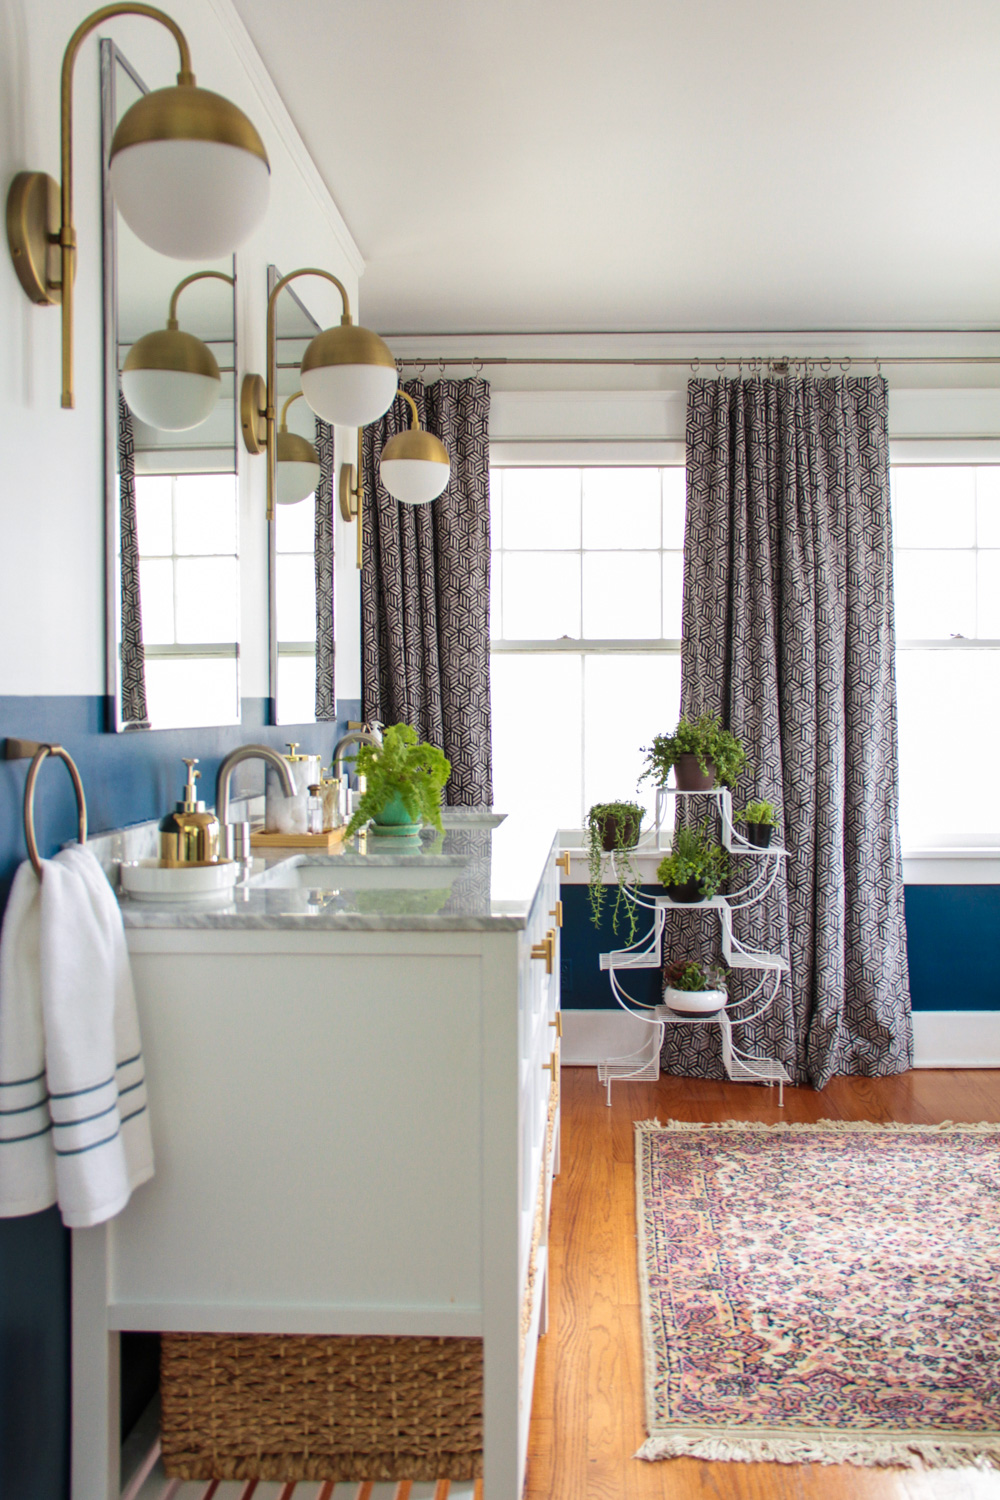 Bohemian Blue and White Master Bathroom with Brass Sconces